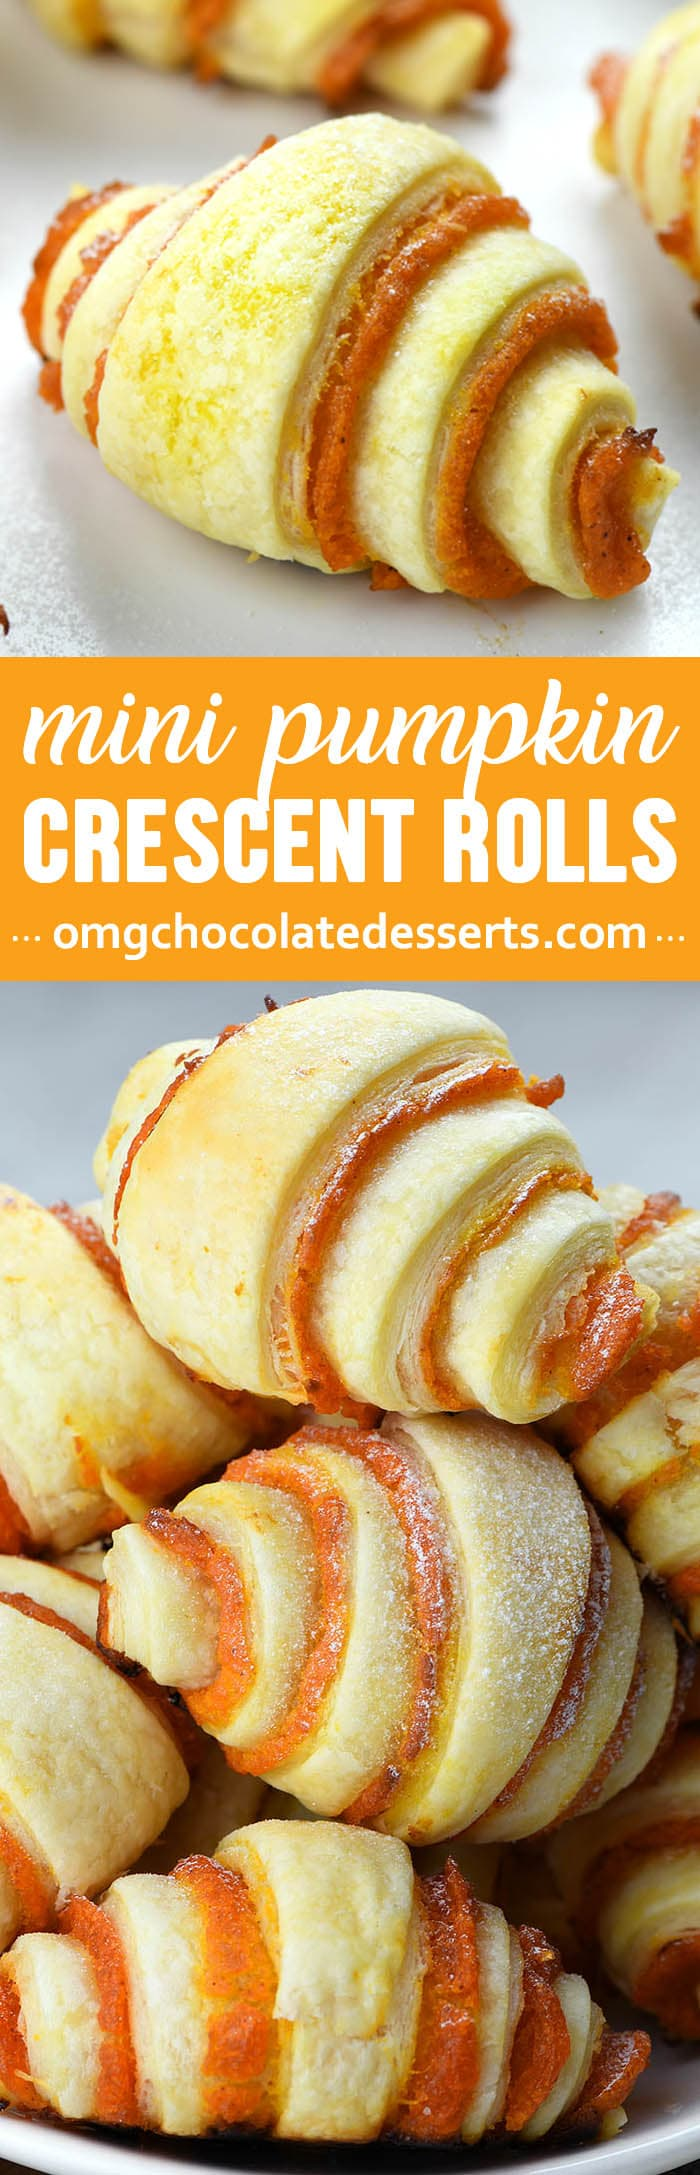 Mini Pumpkin Pie Crescent Rolls are a quick and easy recipe and perfect way to use leftover pumpkin. These bites are the perfect and easy alternative to a classic pumpkin pie.